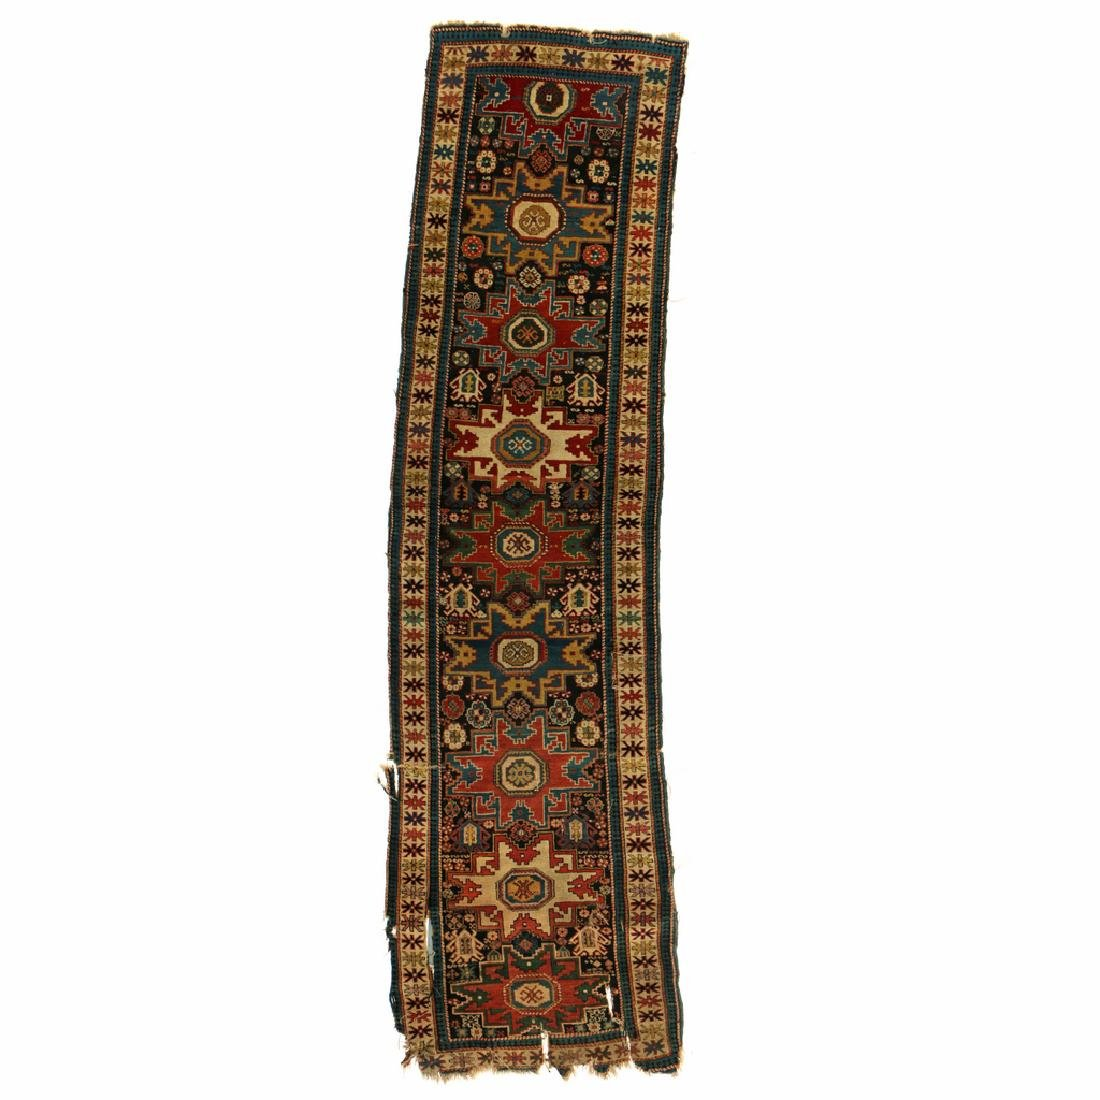 LESGHI-STAR LONG RUG - 4